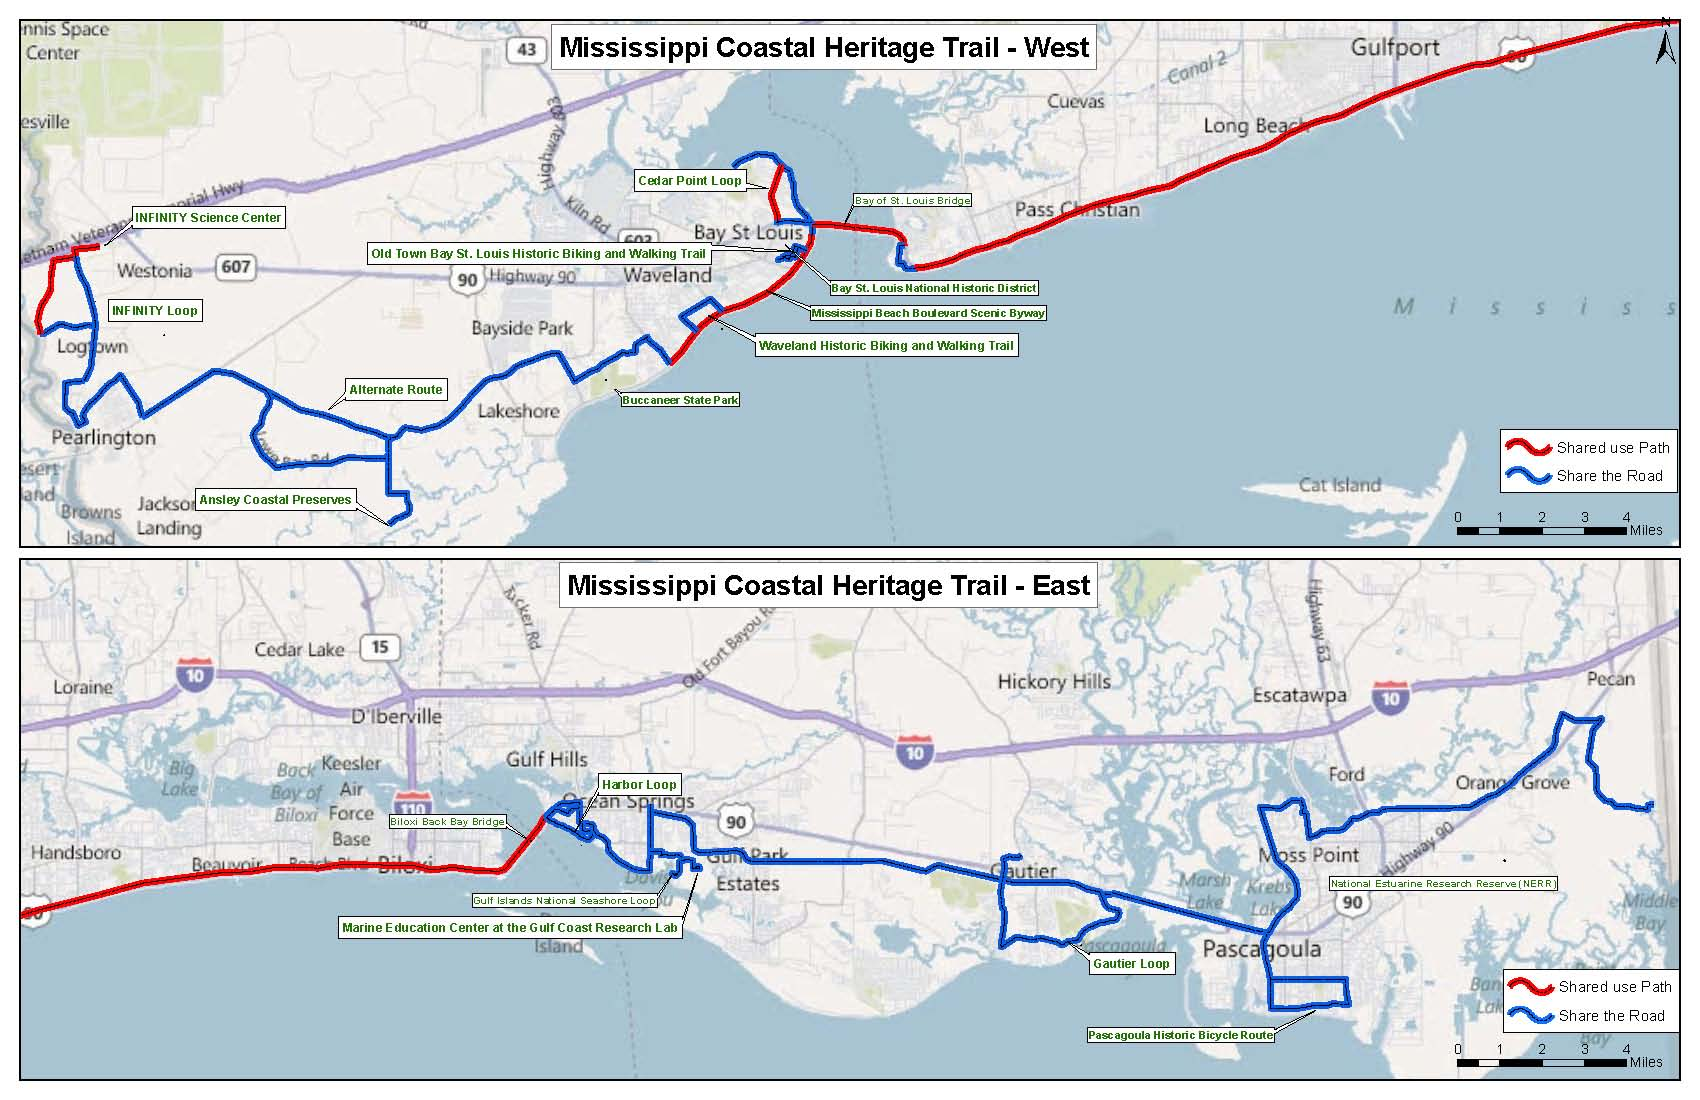 Mississippi-Coastal-Heritage-Trail-Map_Overview011812